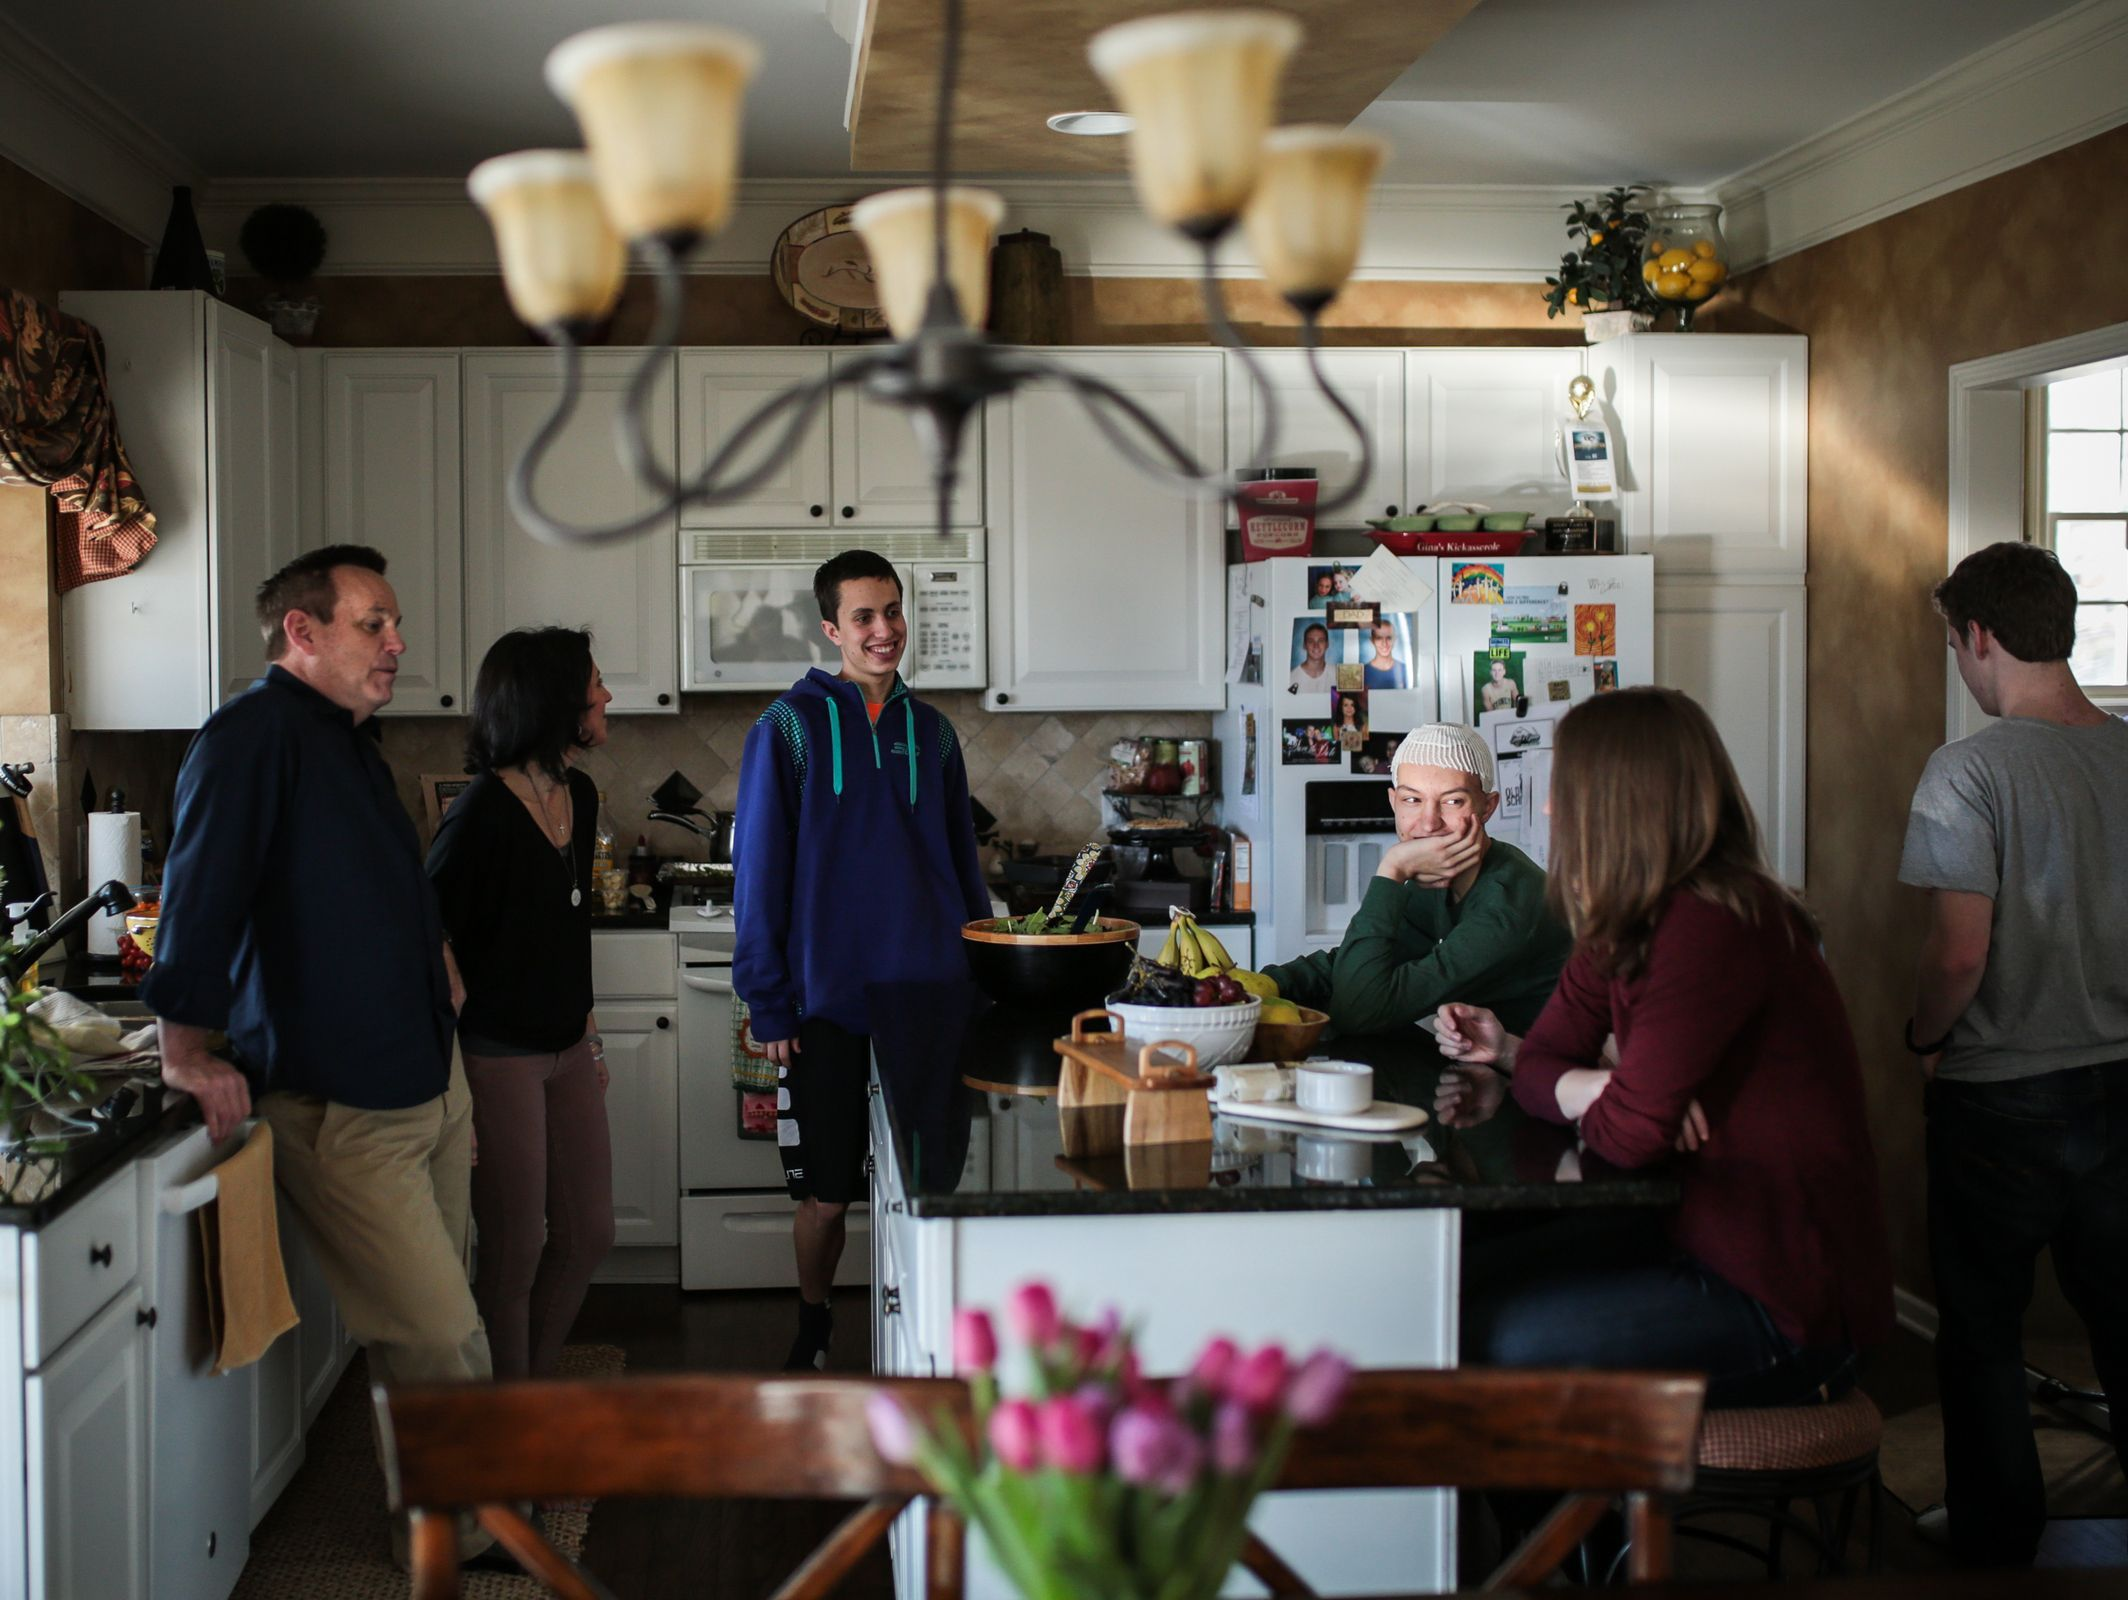 The Kell-Spehn family and friends are seen talking in the kitchen before preparing for a birthday party at their home on Saturday March 11, 2017 in Rochester, MI.